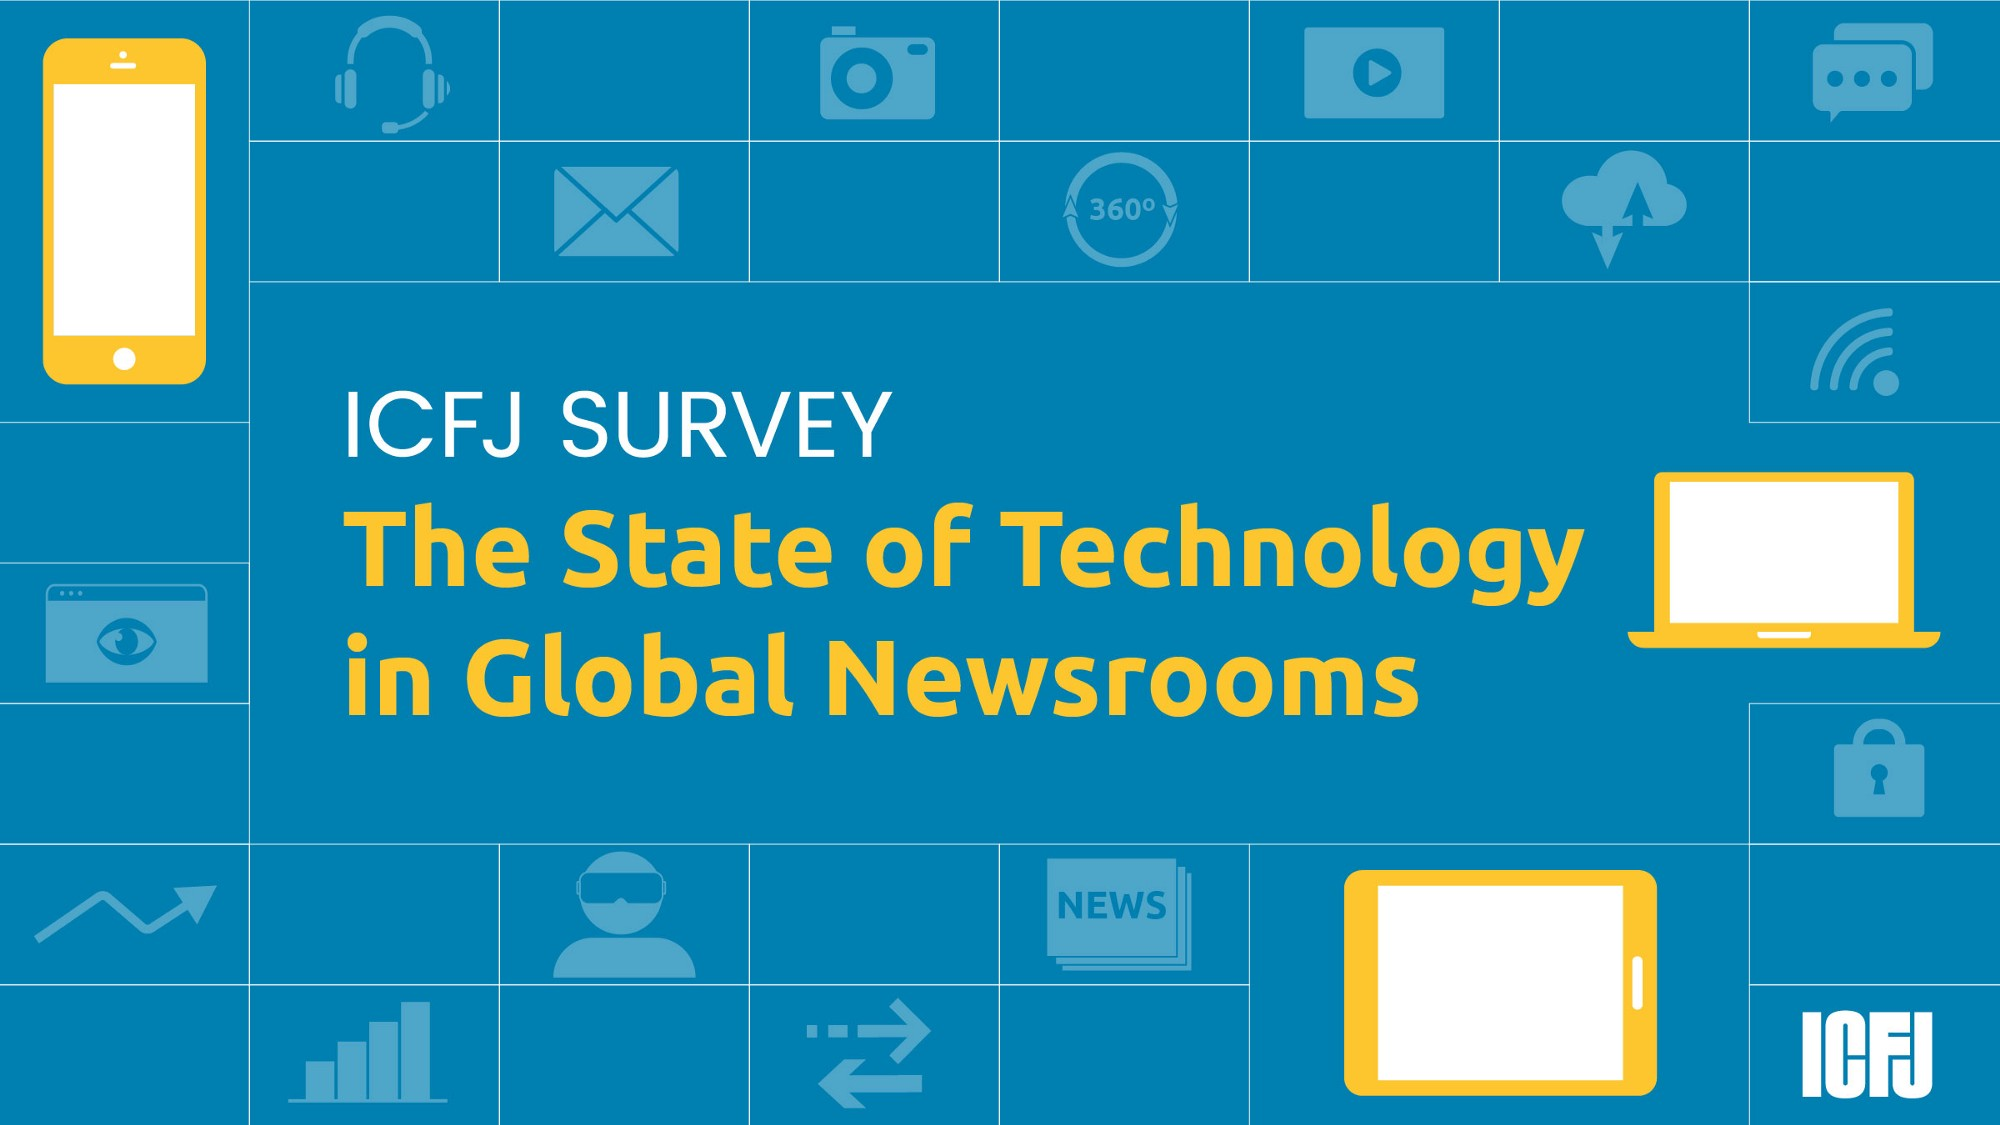 A Study of Technology in Newsrooms – ICFJ